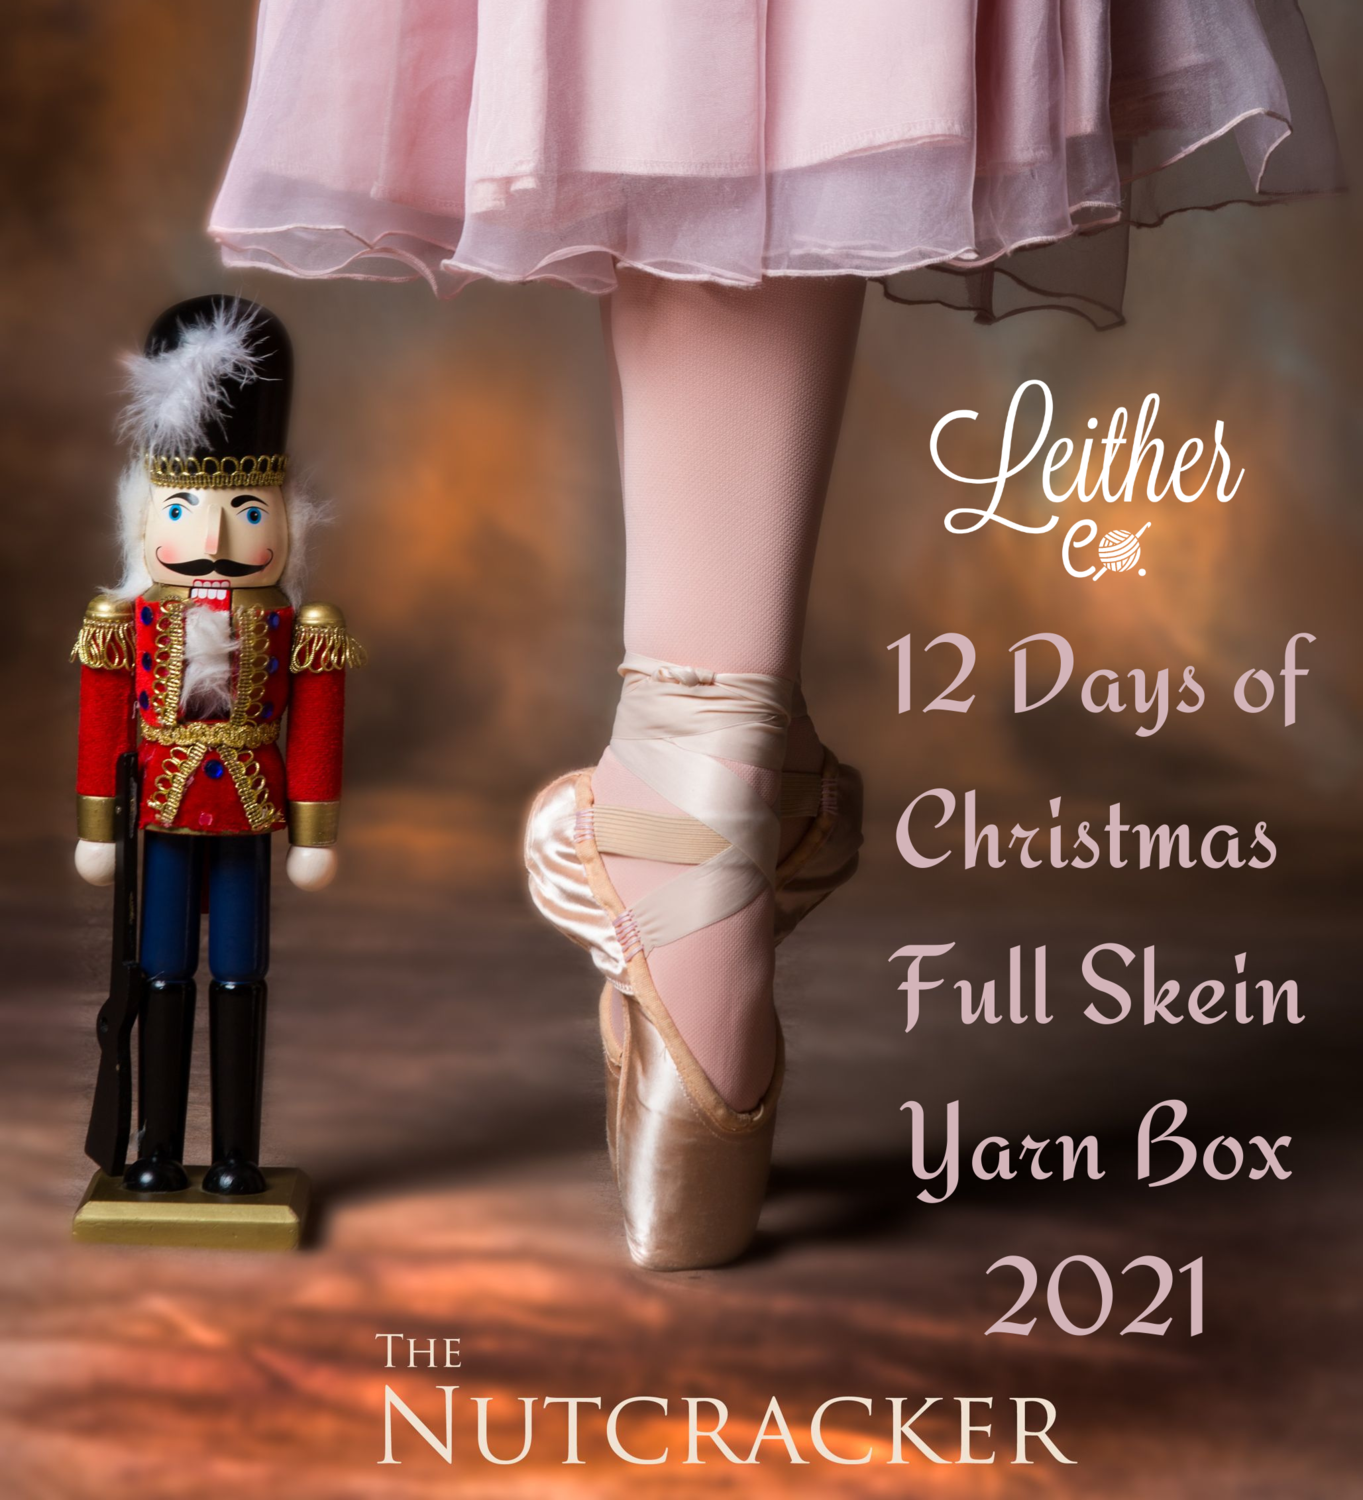 12 Days of Christmas Full Skein Yarn Box